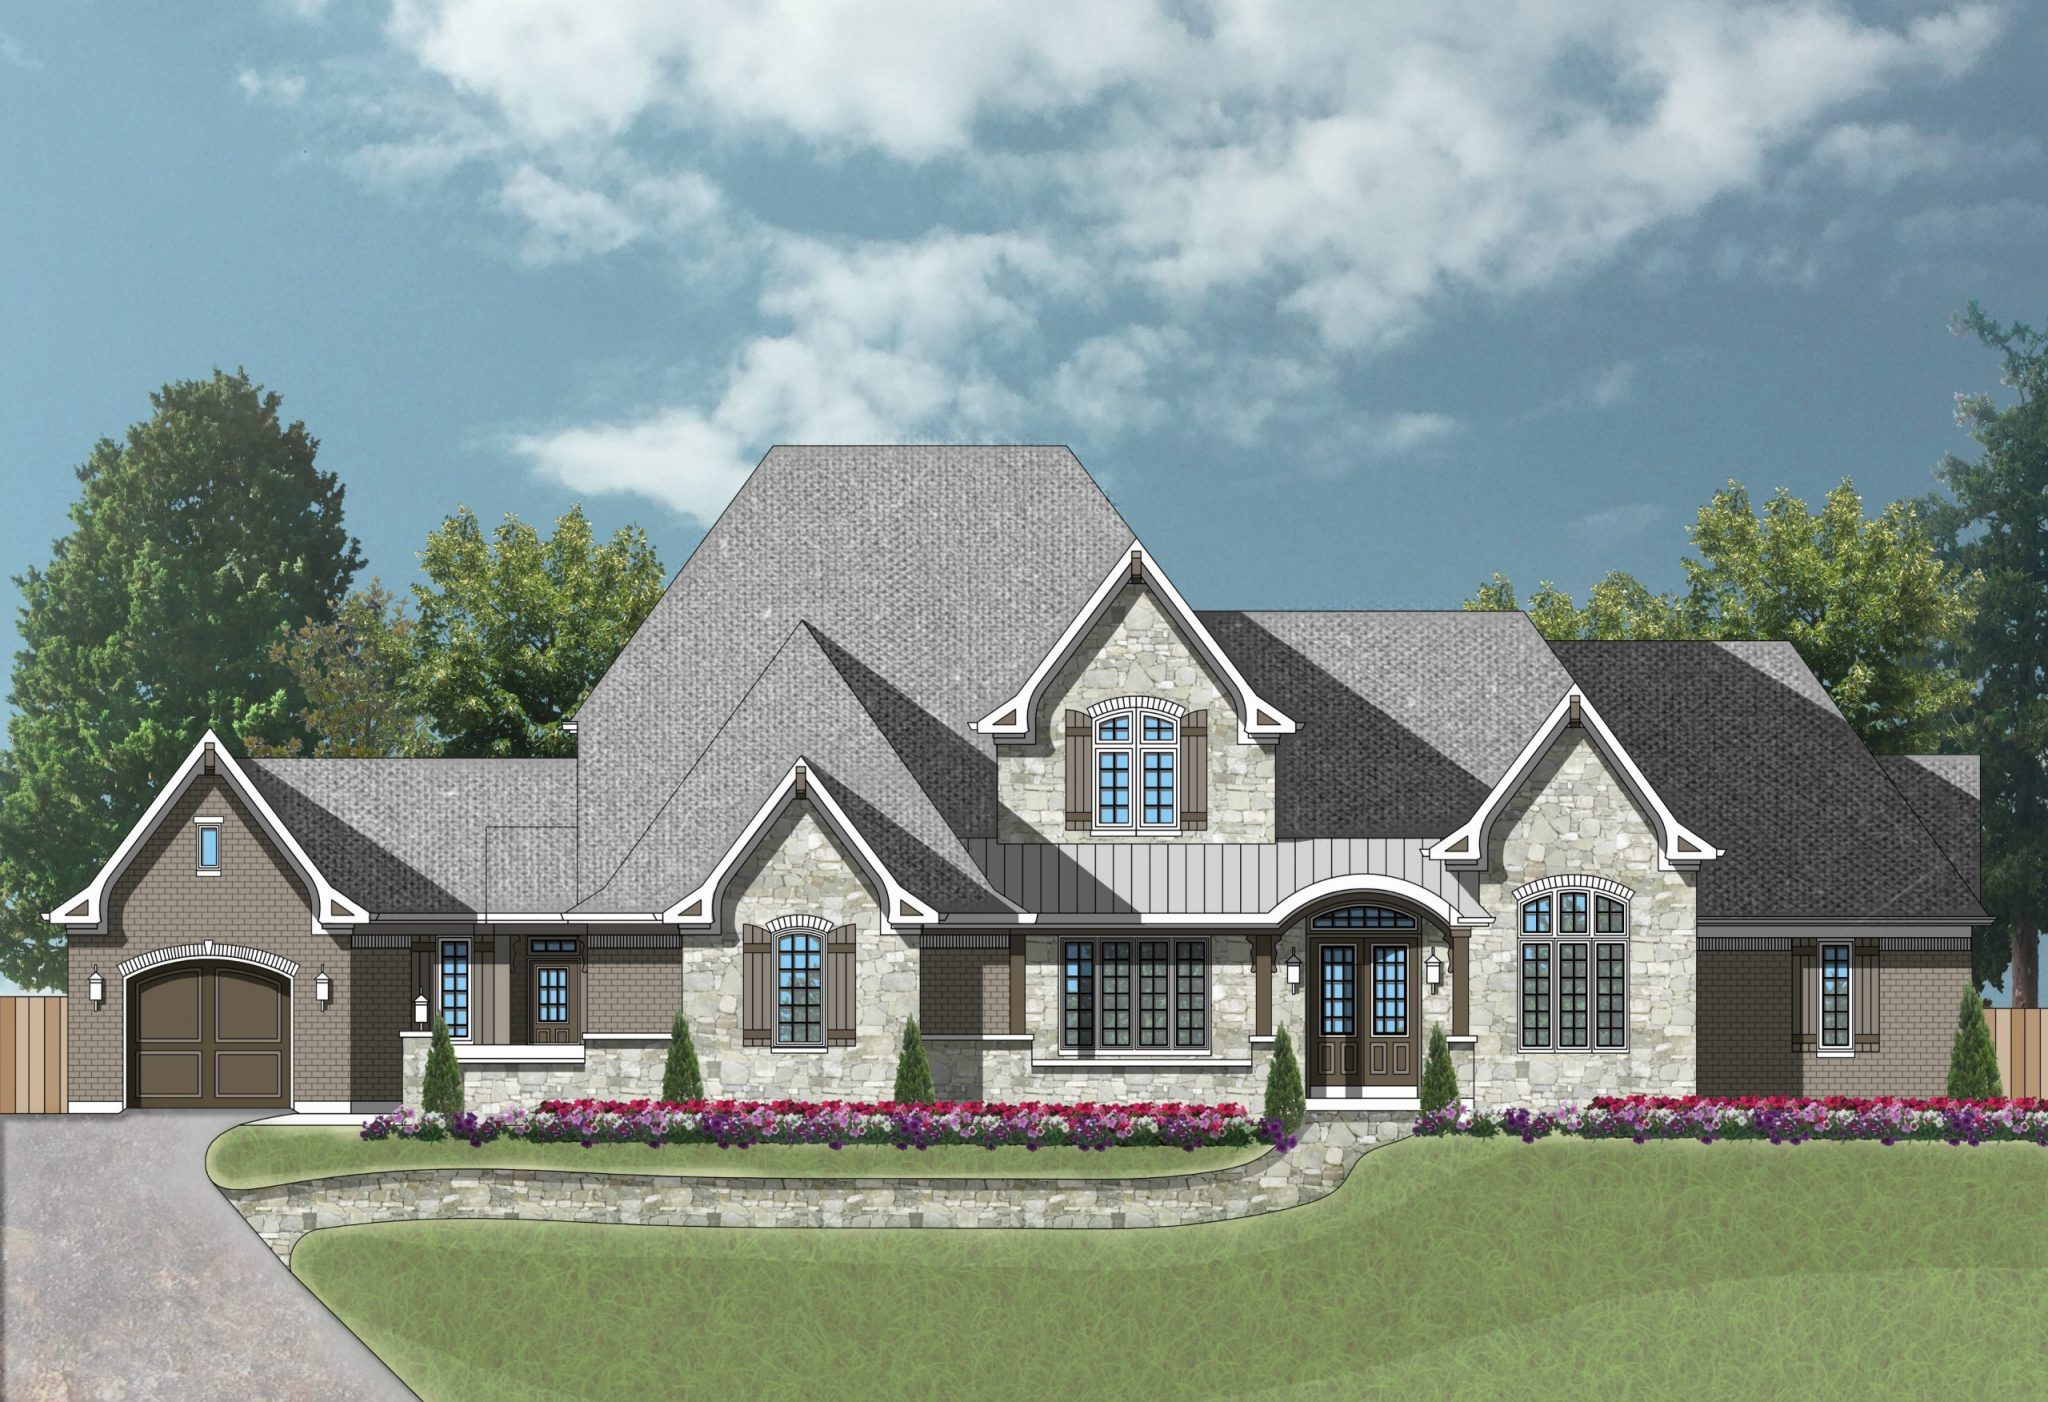 Custom Home Rendering Indian Hill home lots for sale